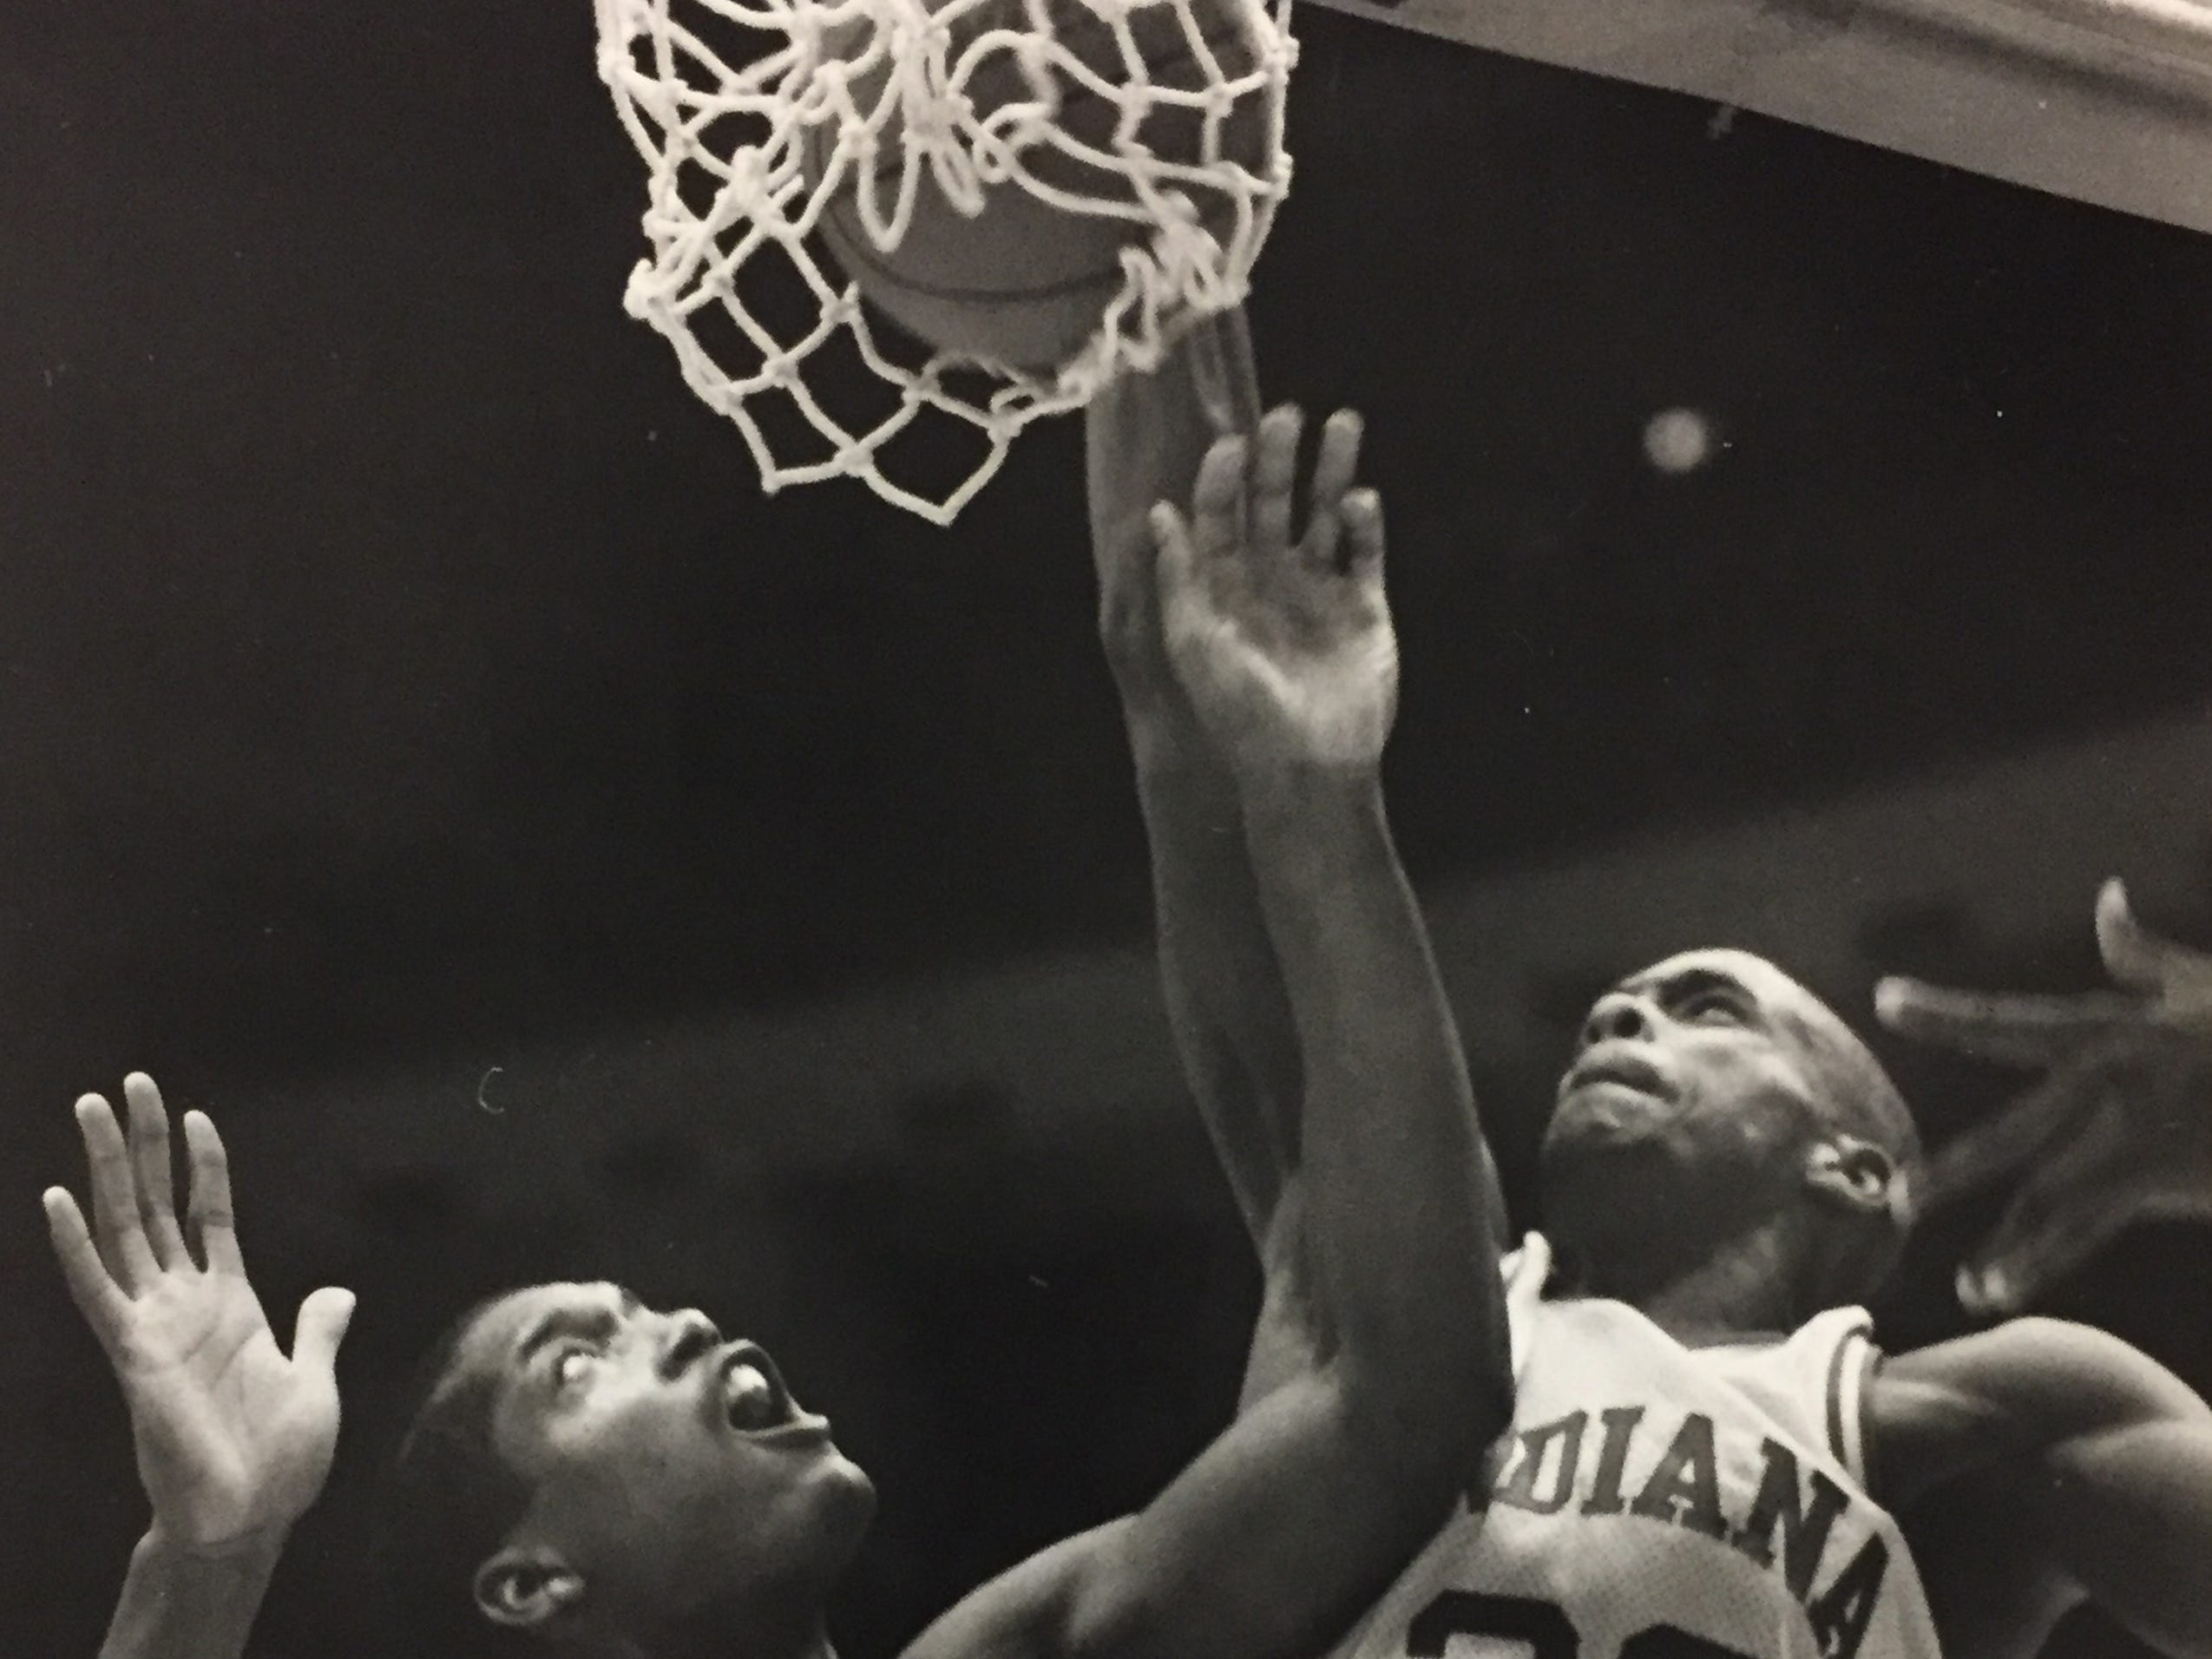 Dean Garrett throws down a dunk over Purdue's Melvin McCants on Jan. 30, 1988.